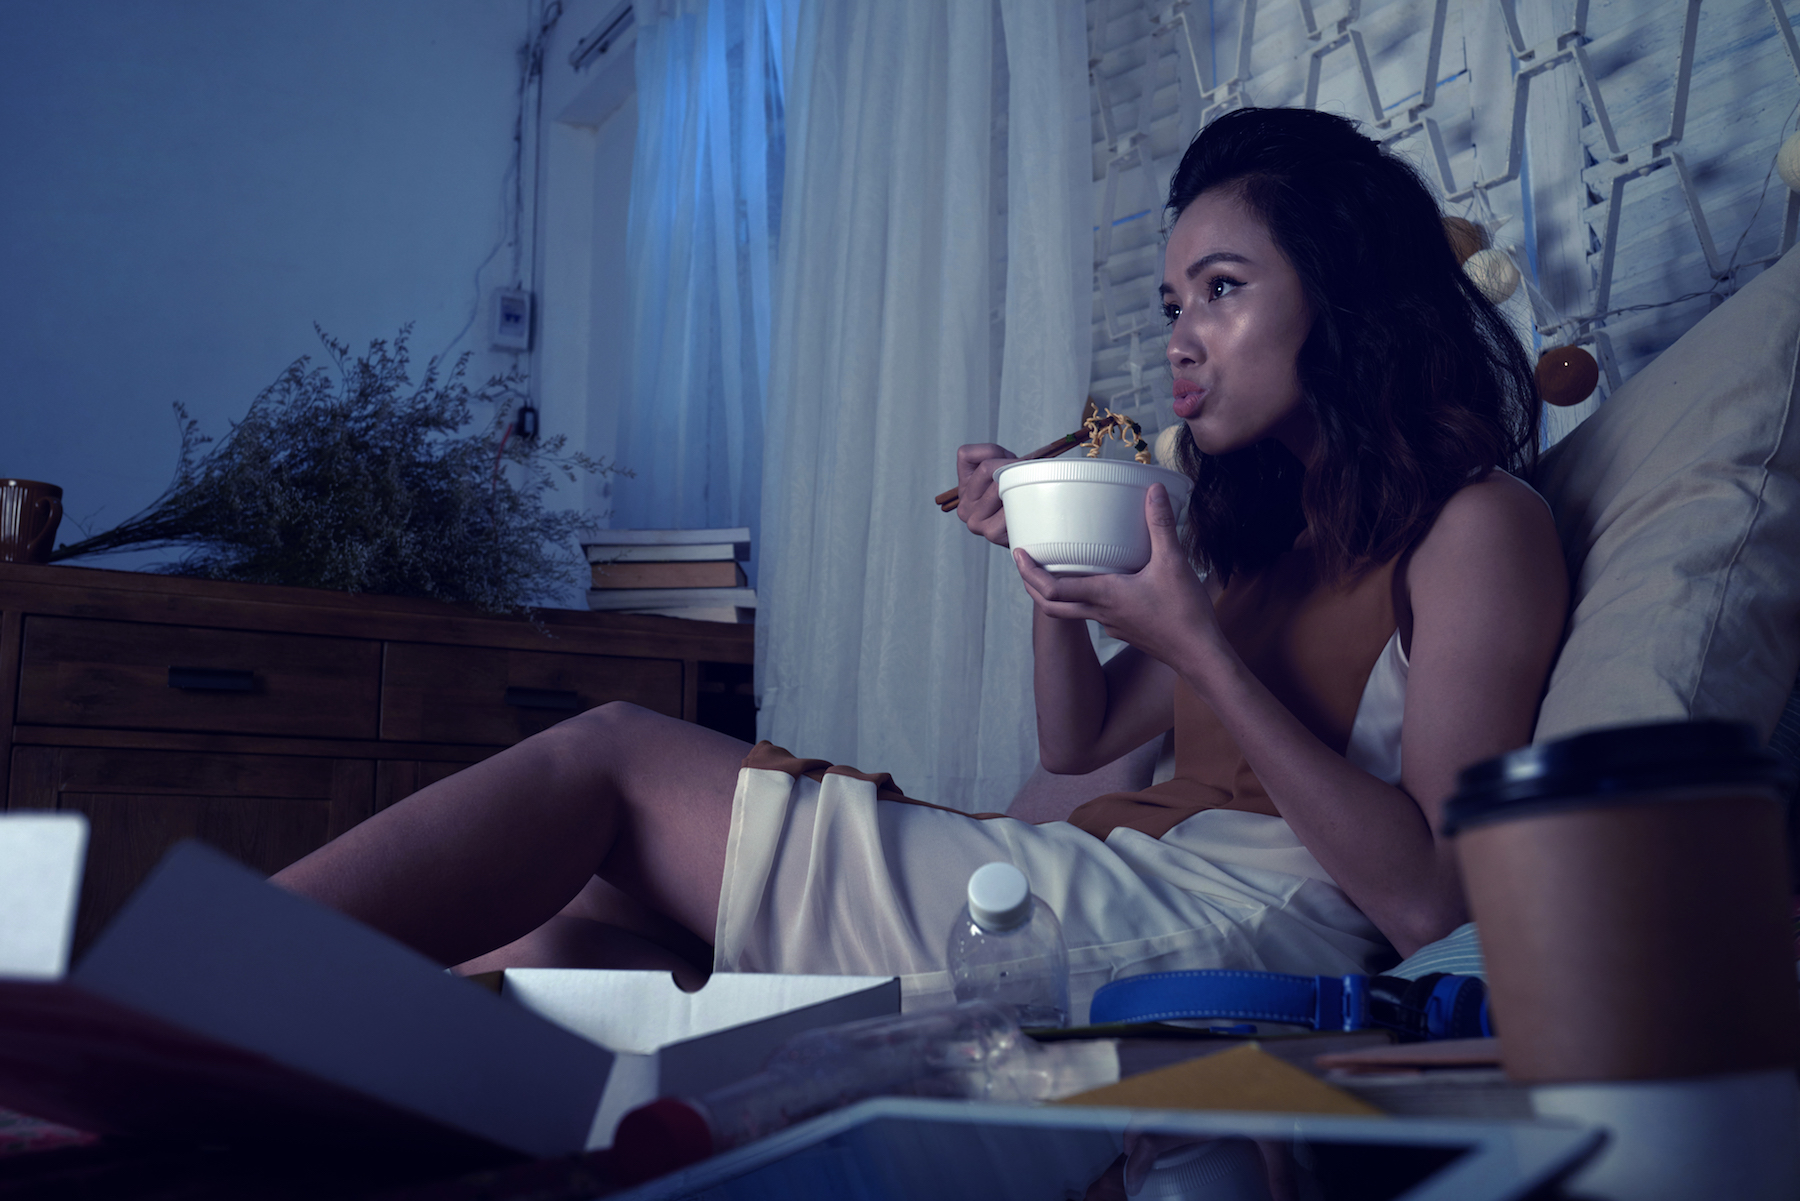 <p>Woman Eating Late Night</p>